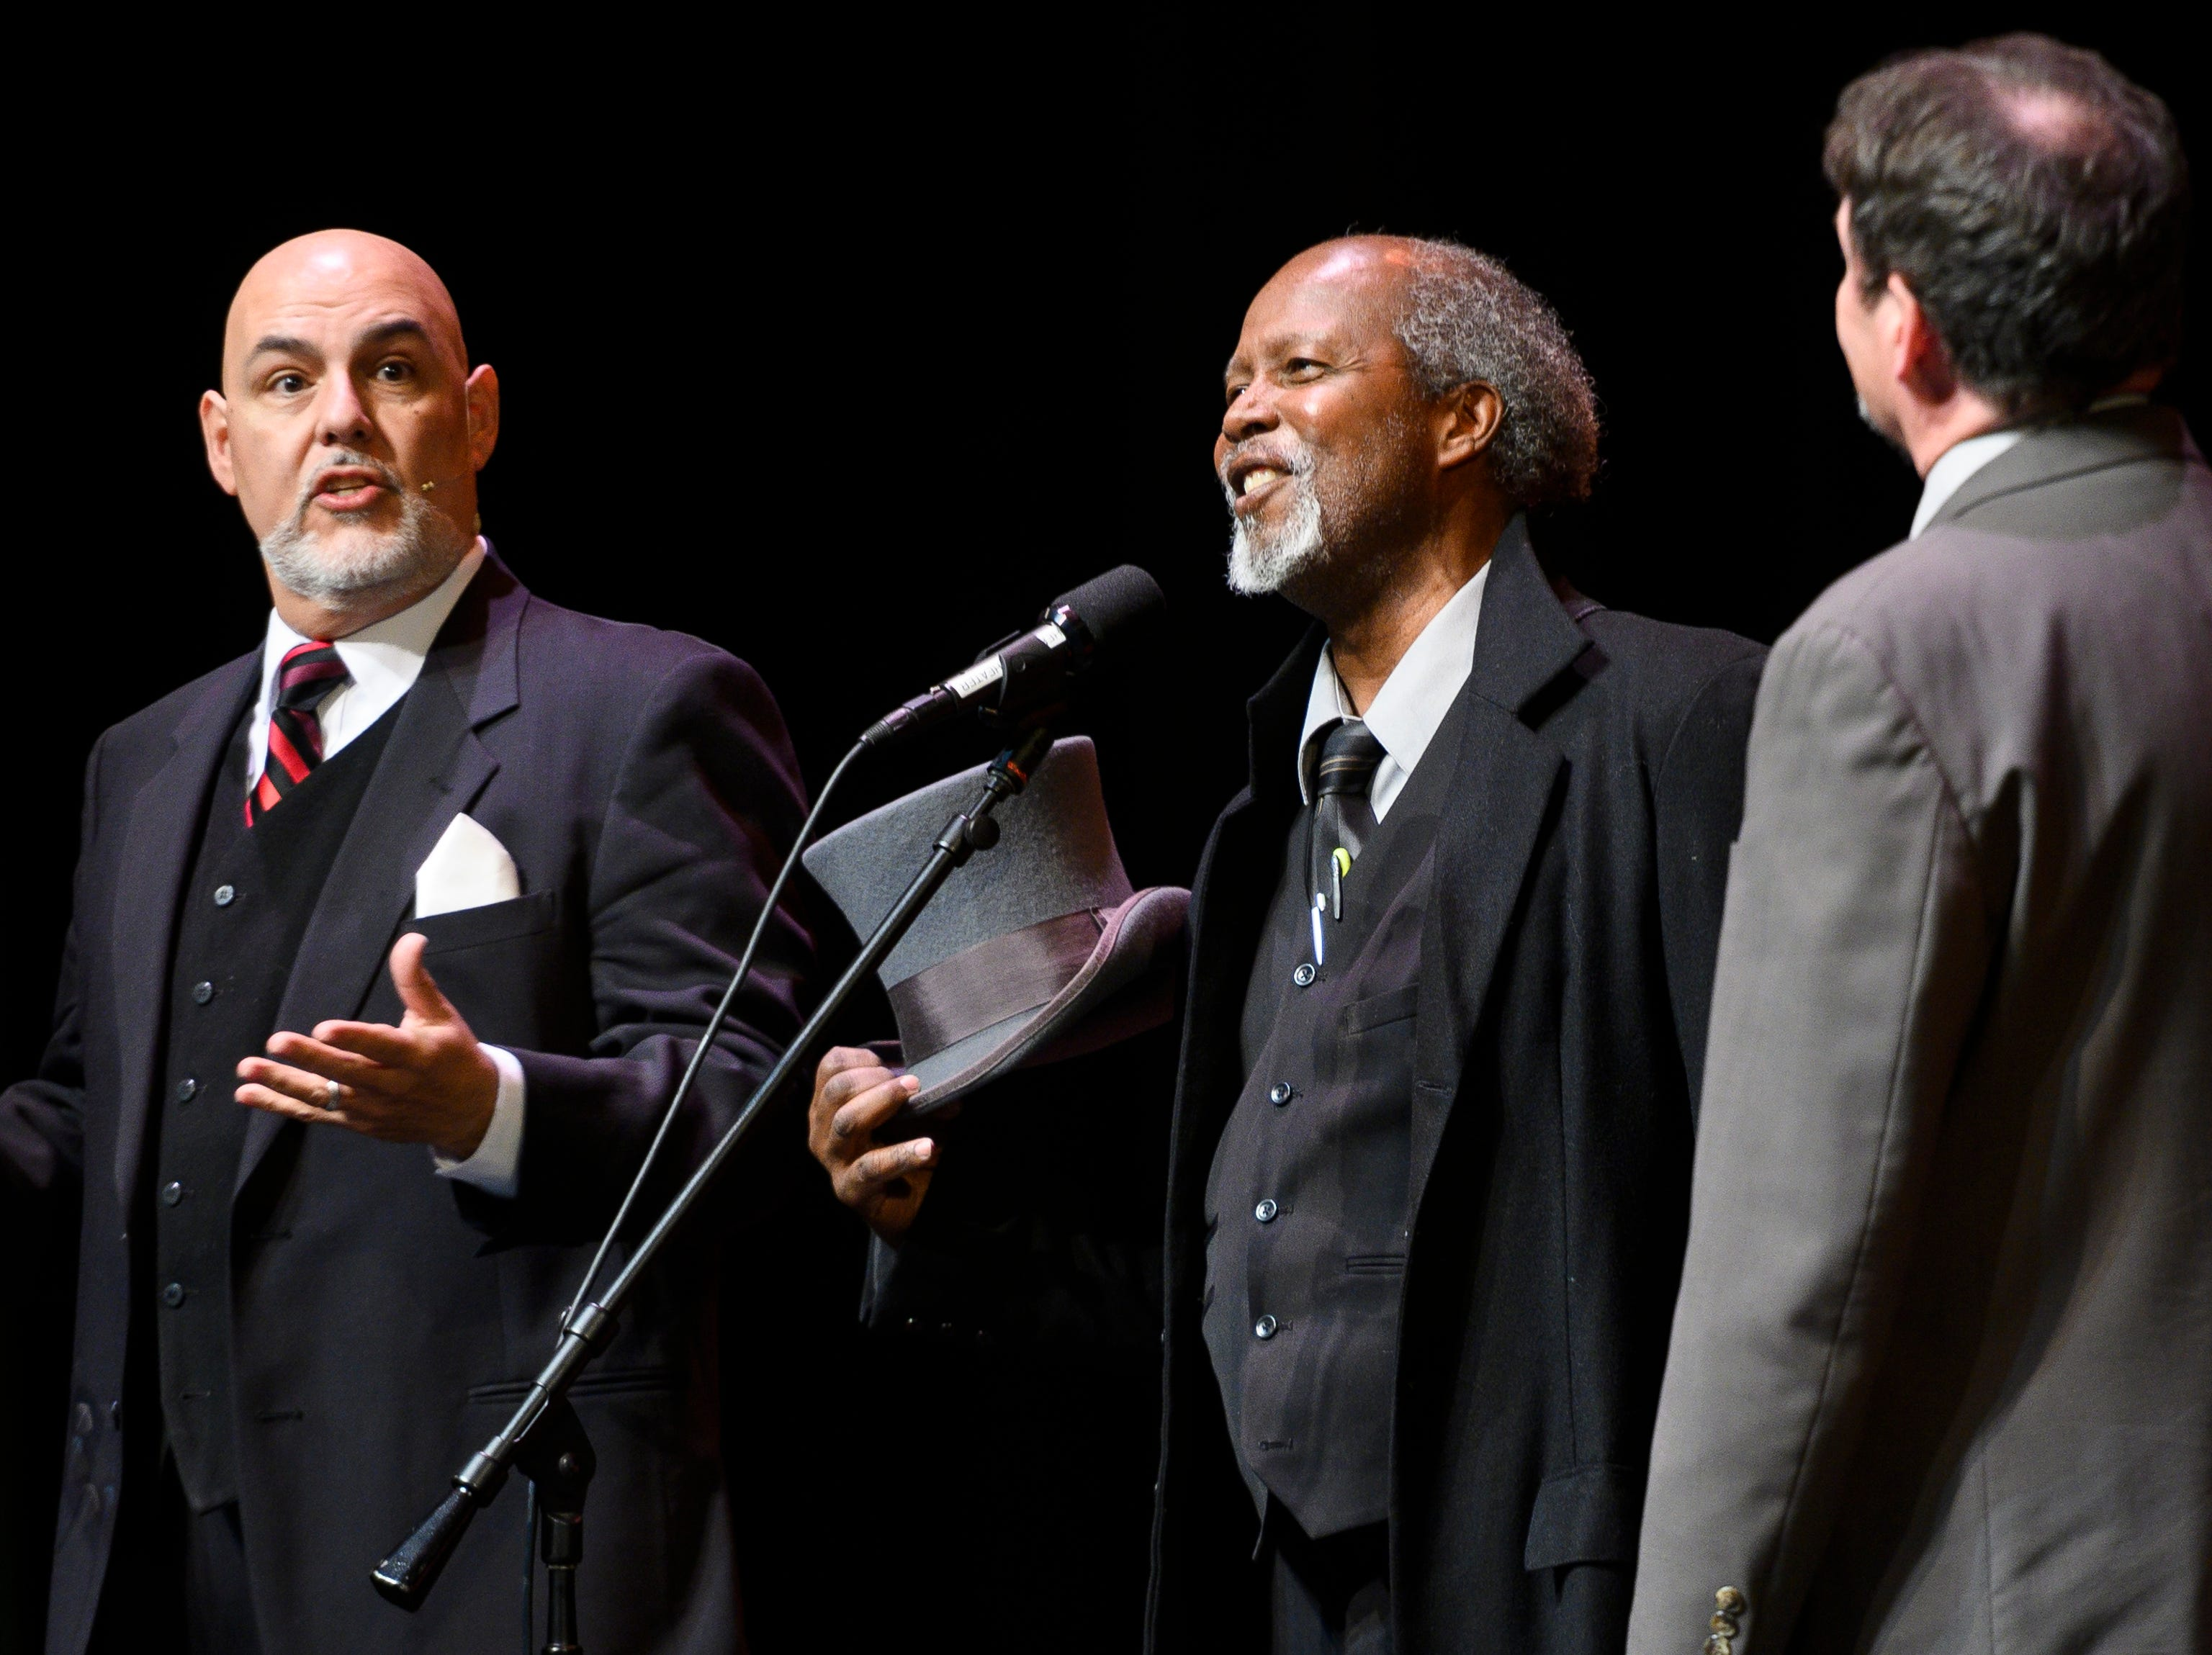 The Neil Simon Festival presents A Christmas Carol on the Air in the Heritage Center Theater Thursday, December 20 2018. Clarence Gilyard, known for his roles in Walker, Texas Ranger, Matlock, and Top Gun, plays Ebenezer Scrooge. The show has performances Friday and Saturday nights at 7:30 p.m. and tickets are $15 and can be bought at the door.